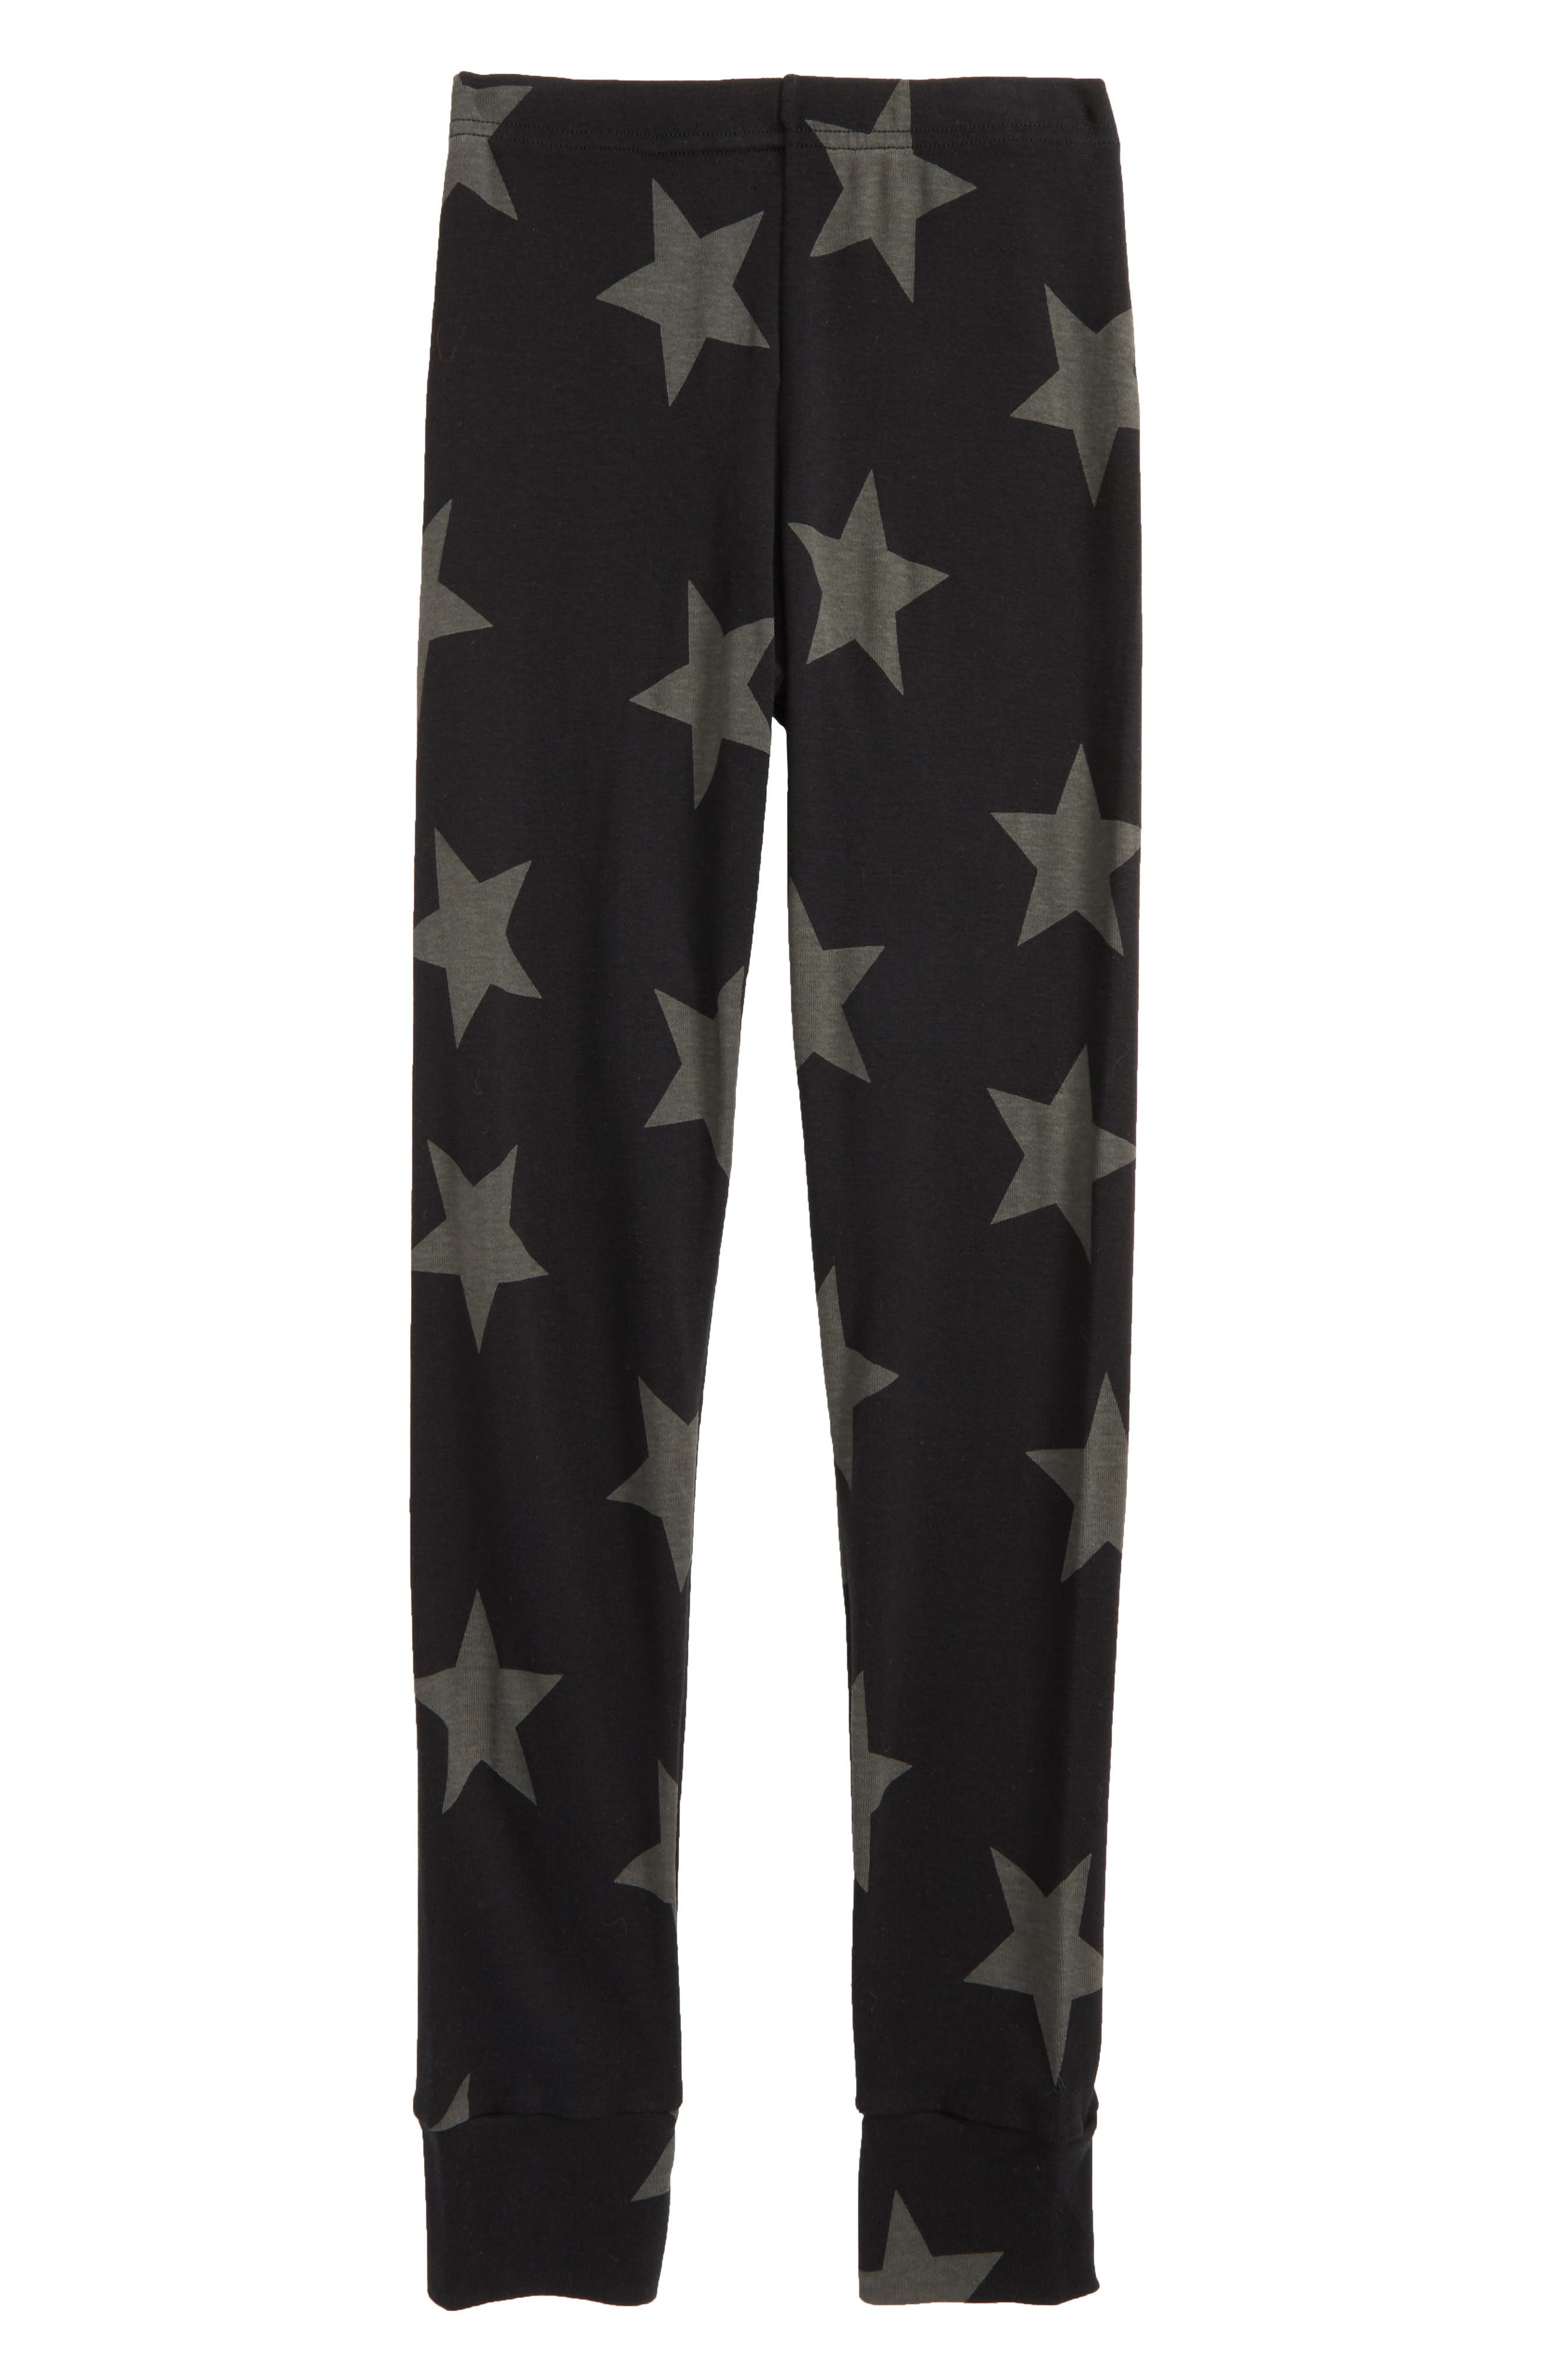 Star Print Leggings,                         Main,                         color, Black